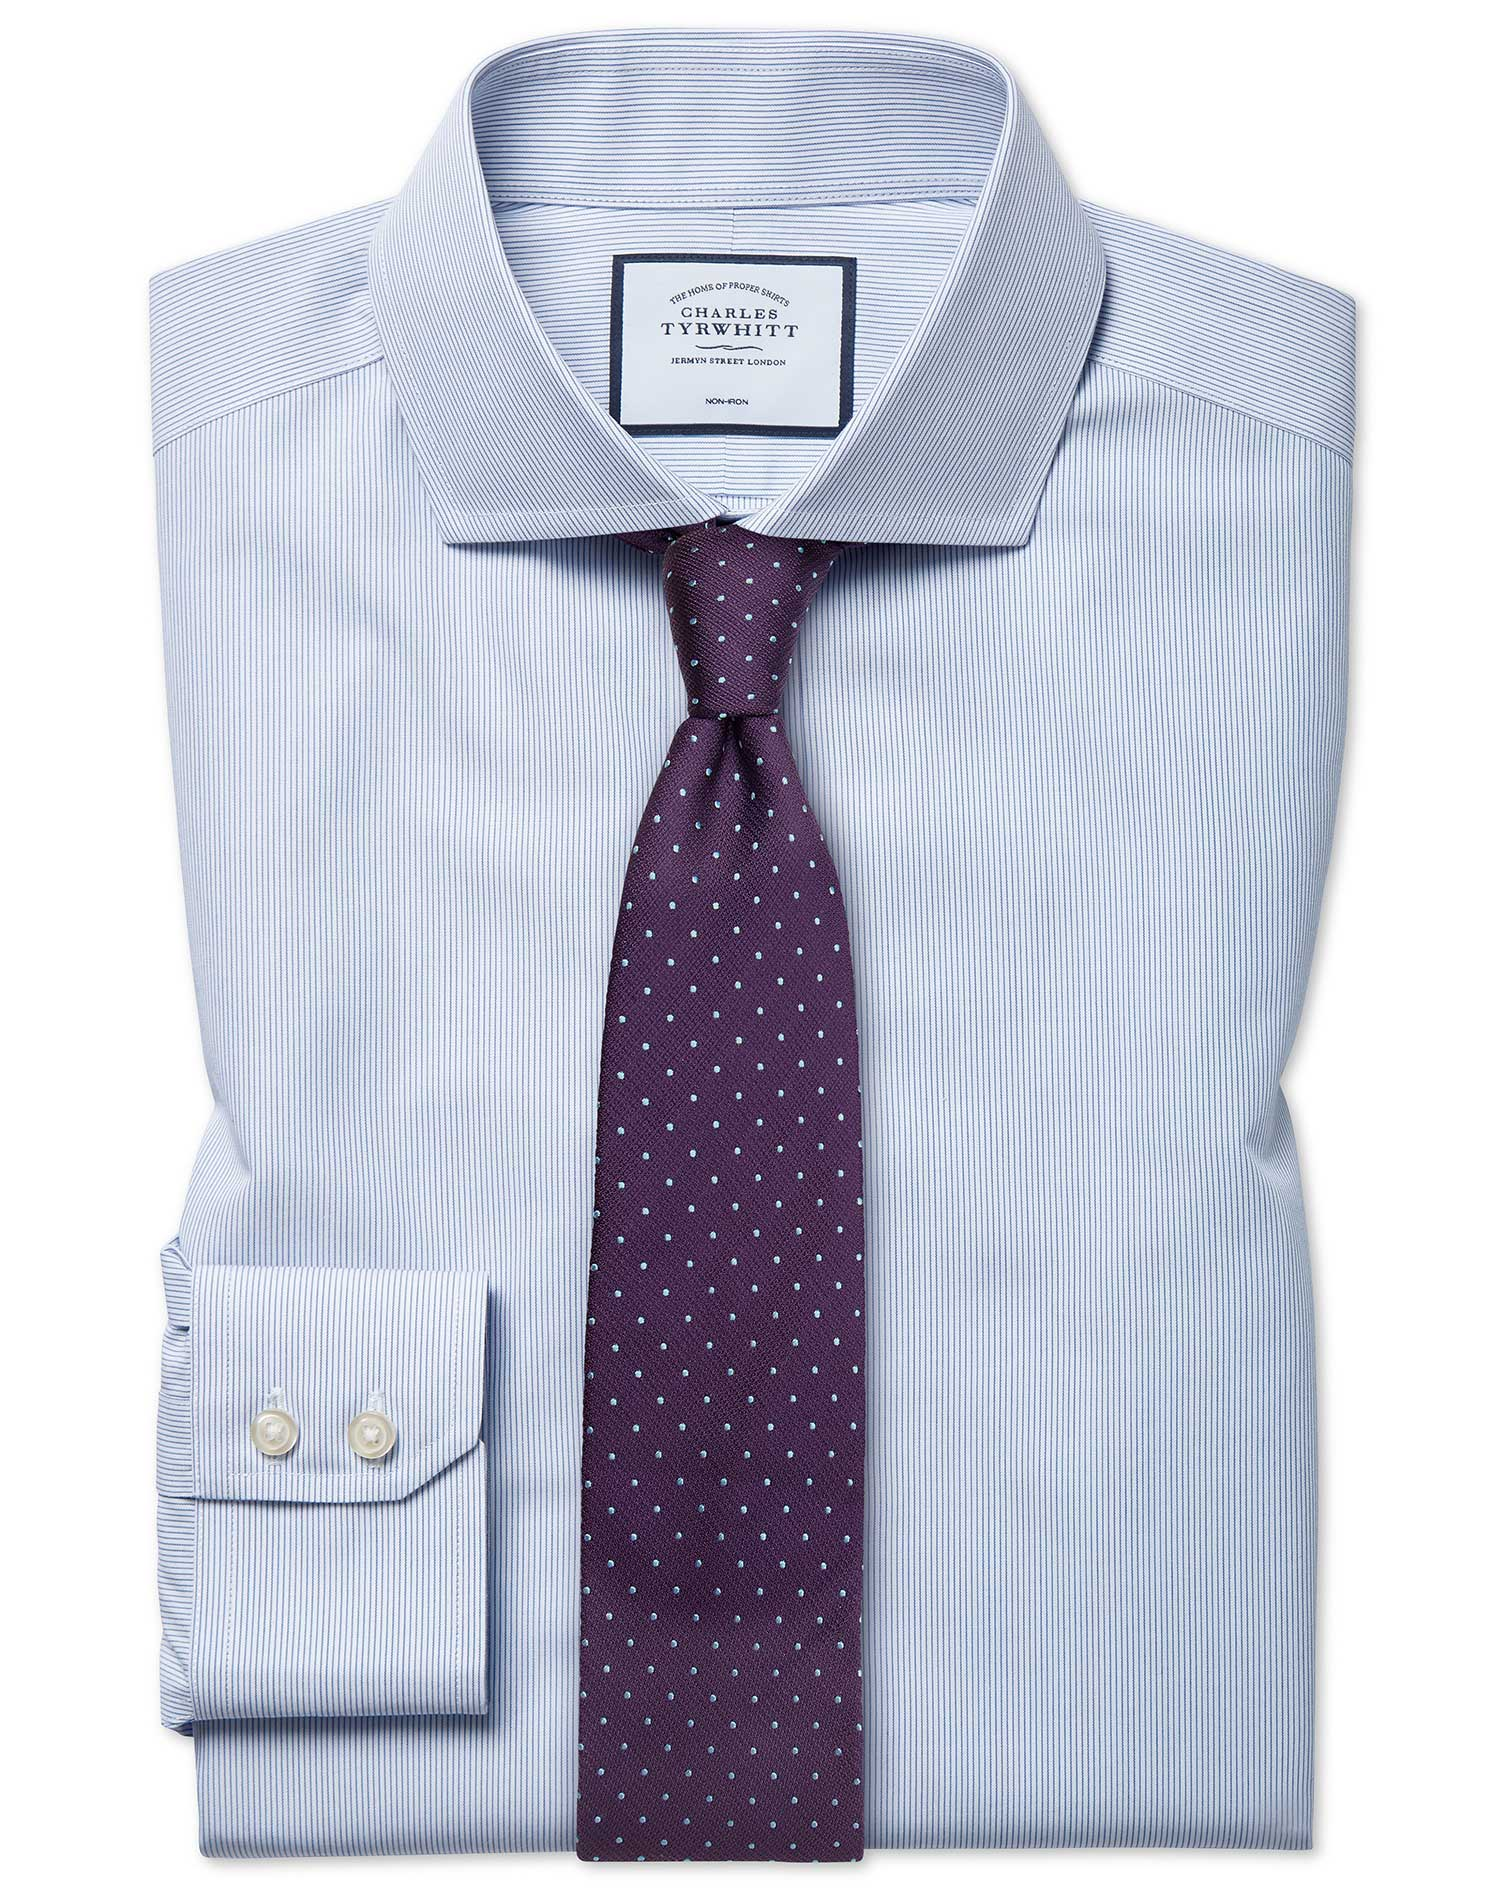 Slim Fit Non-Iron Blue Stripe Tyrwhitt Cool Cotton Formal Shirt Single Cuff Size 17/38 by Charles Ty